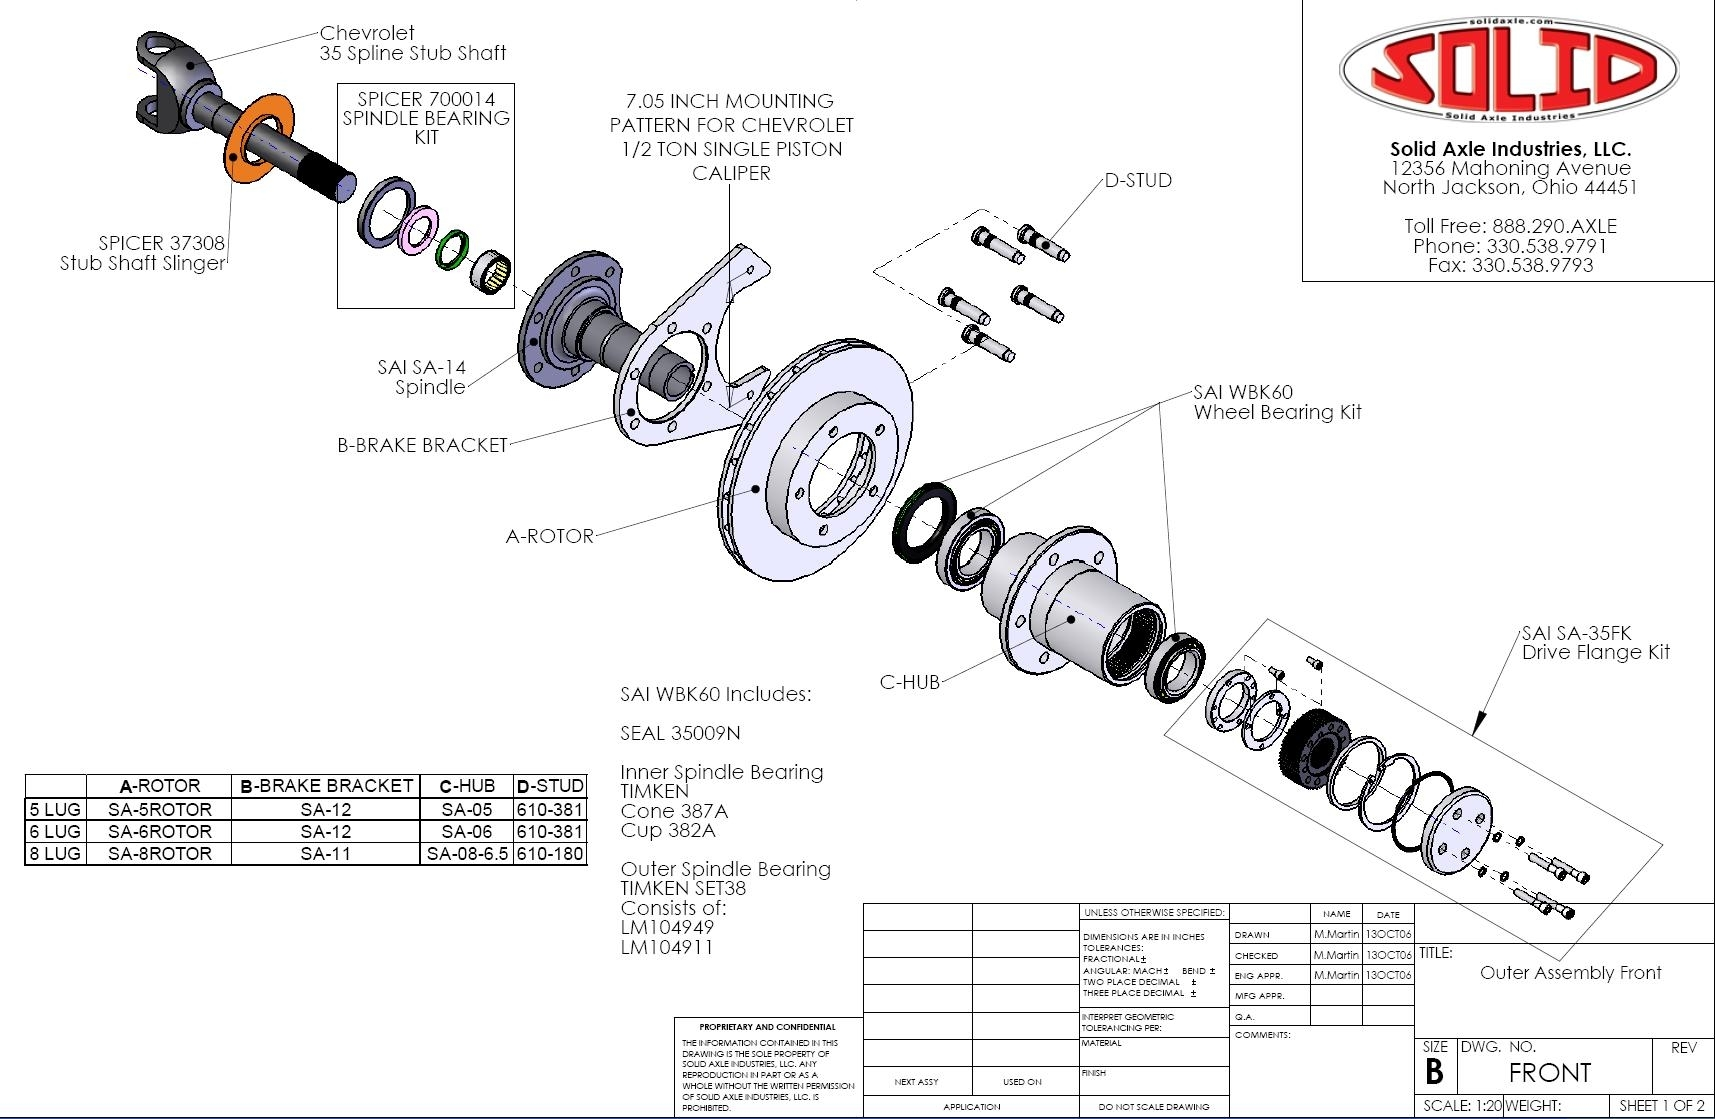 Warn 35 Spline Hub Dana 60 Tech Info And Install - Pirate4X4 pertaining to Dana 60 Front Axle Parts Diagram